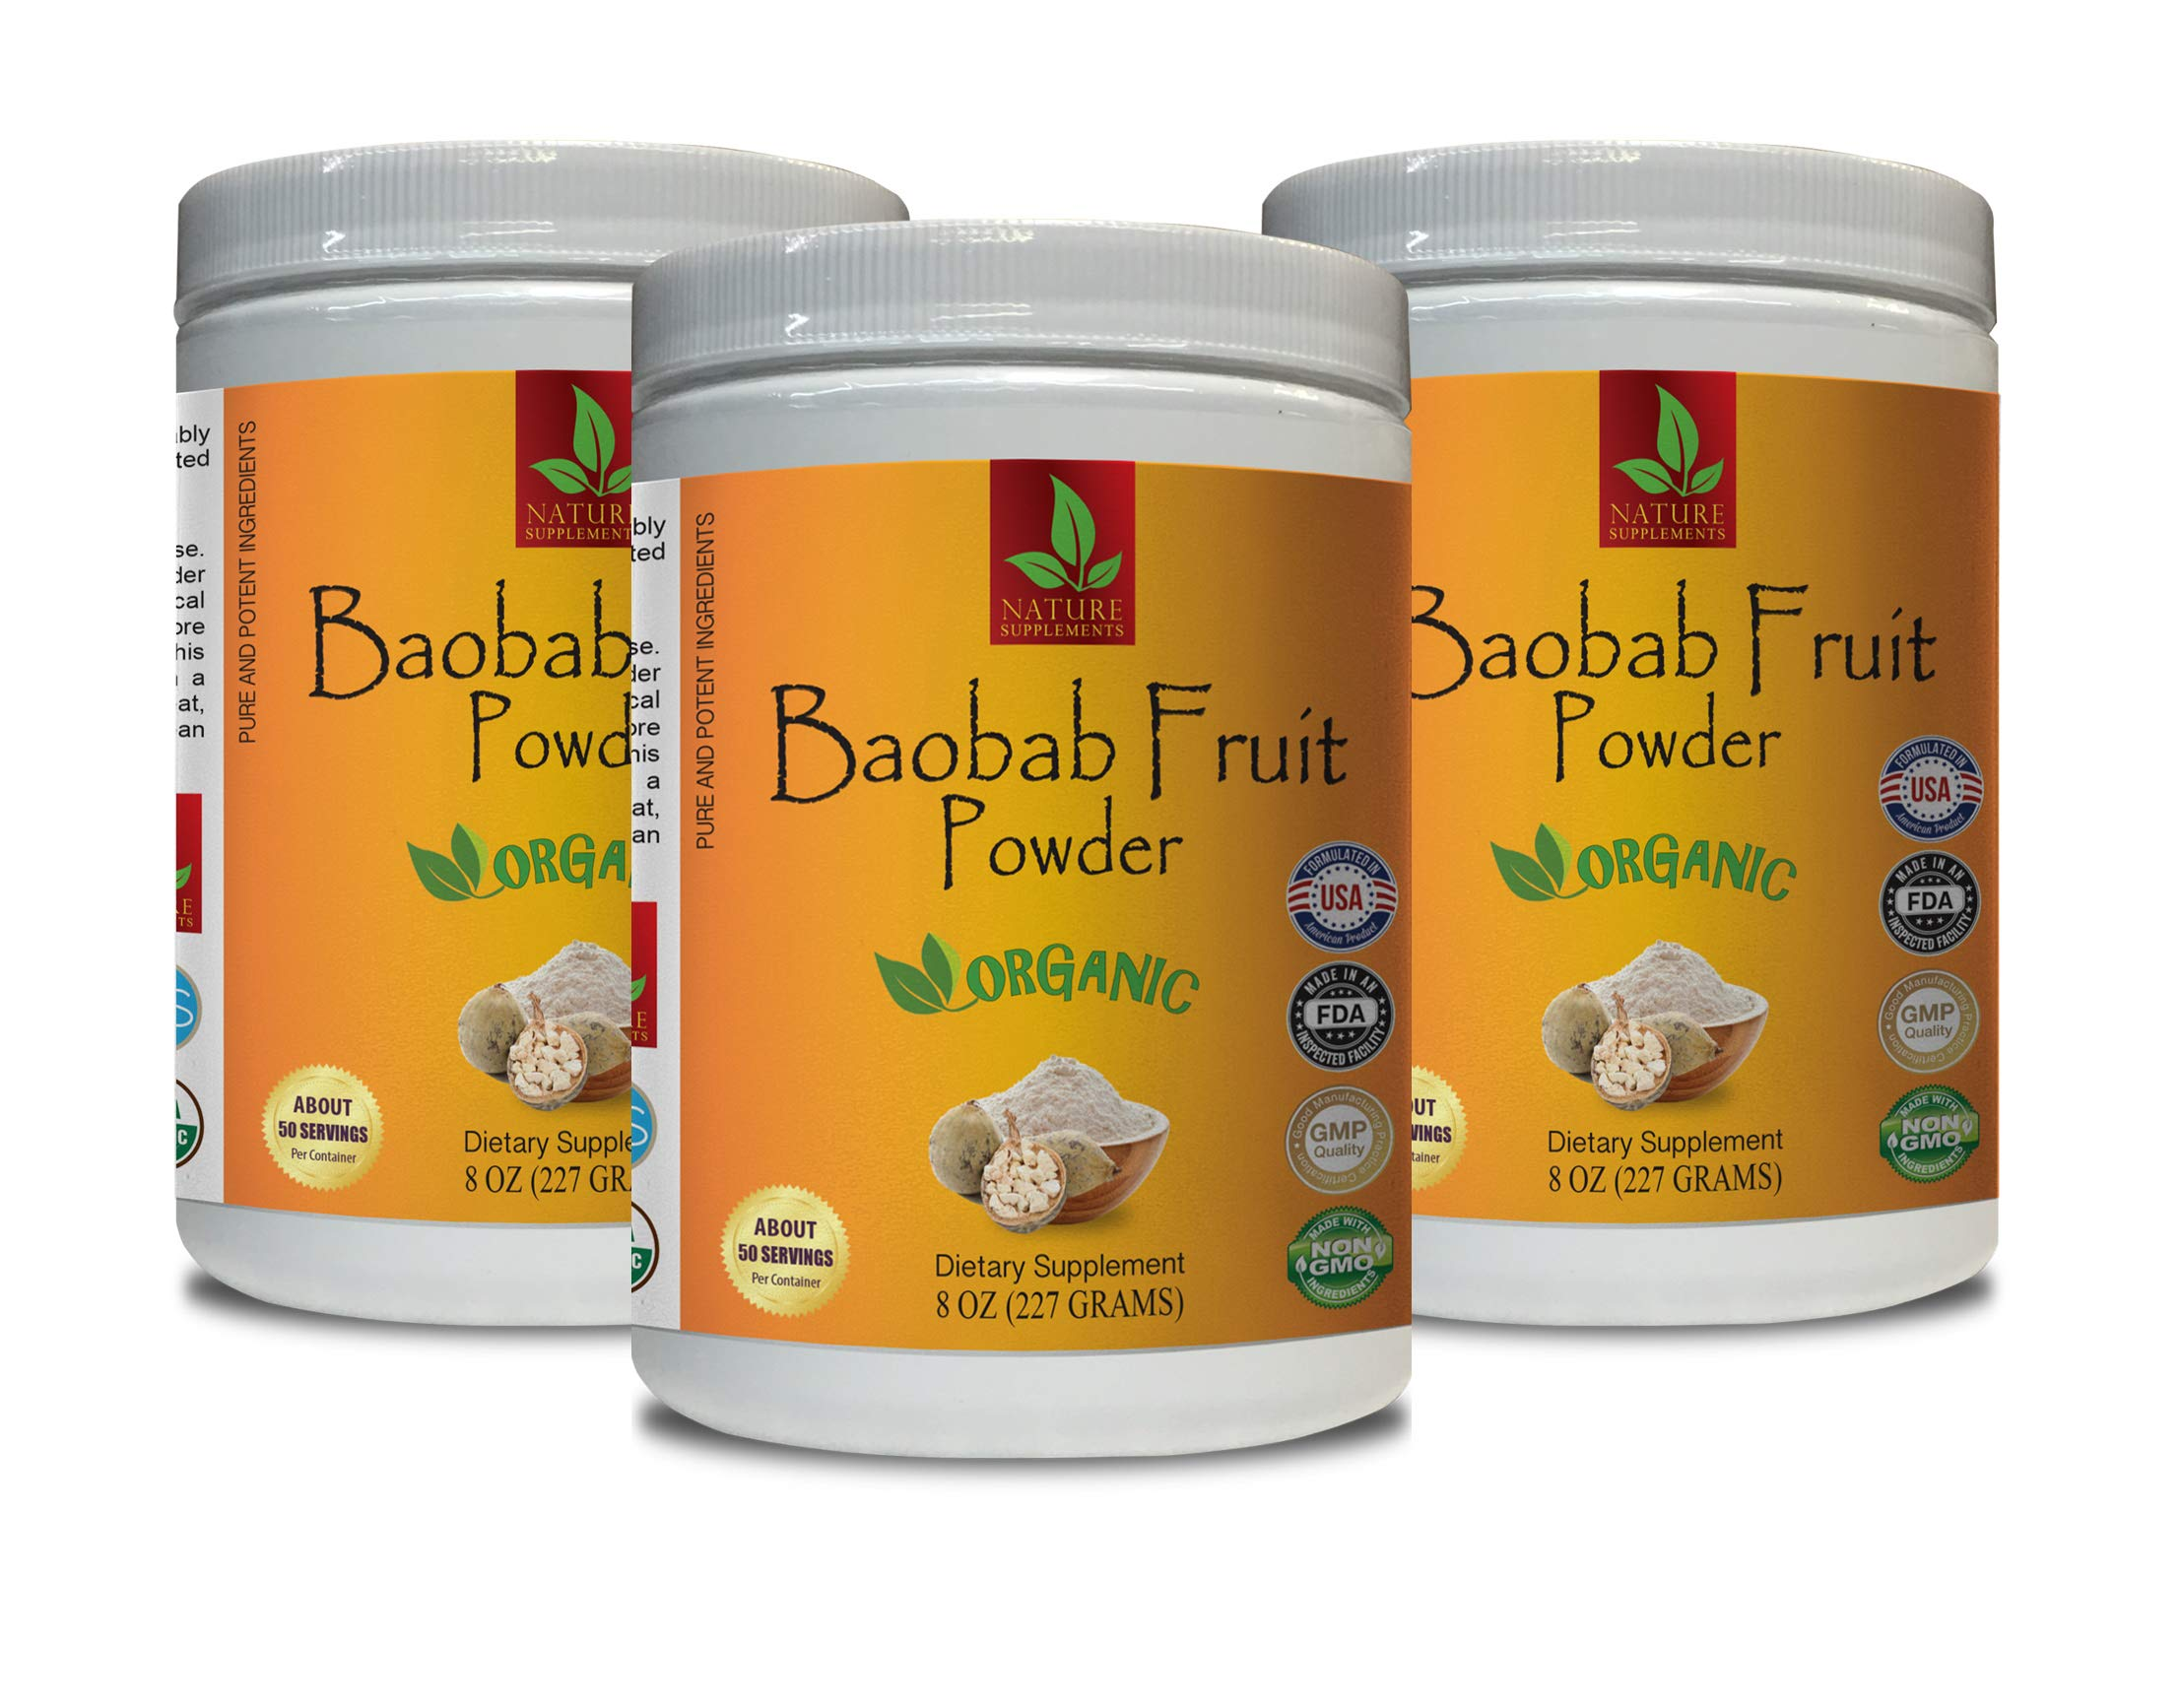 Anti-Aging Powder - Baobab Fruit Organic Powder - Pure and Potent Ingredients - Digestive Weight Loss - 3 Cans 24 OZ (150 Servings)